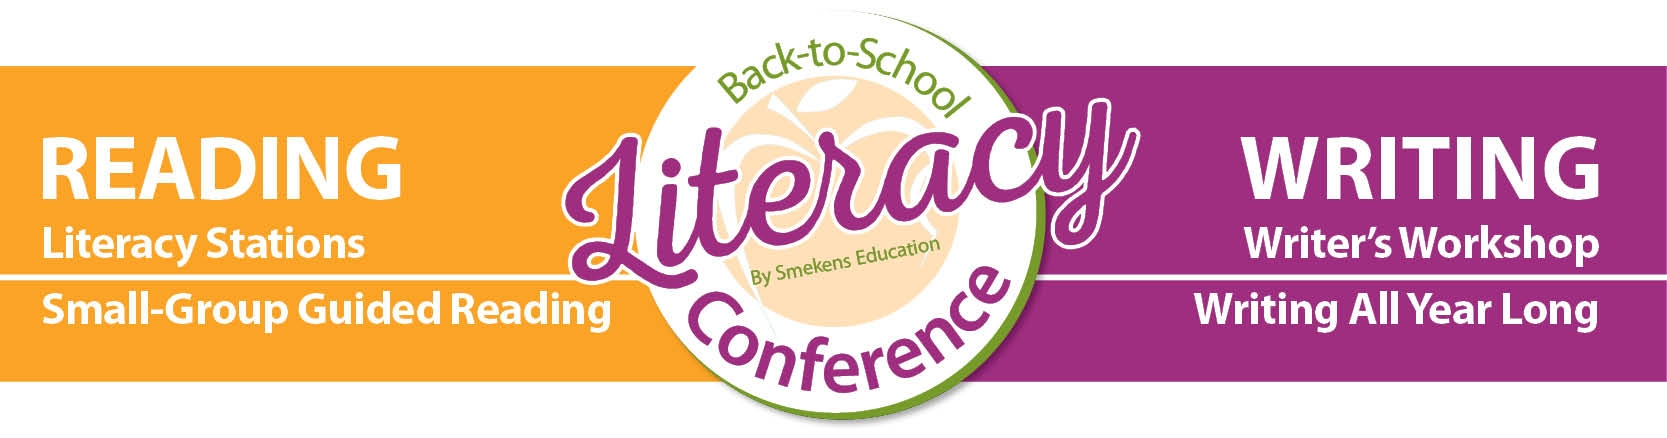 Back-to-School Literacy Conference Reading & Writing